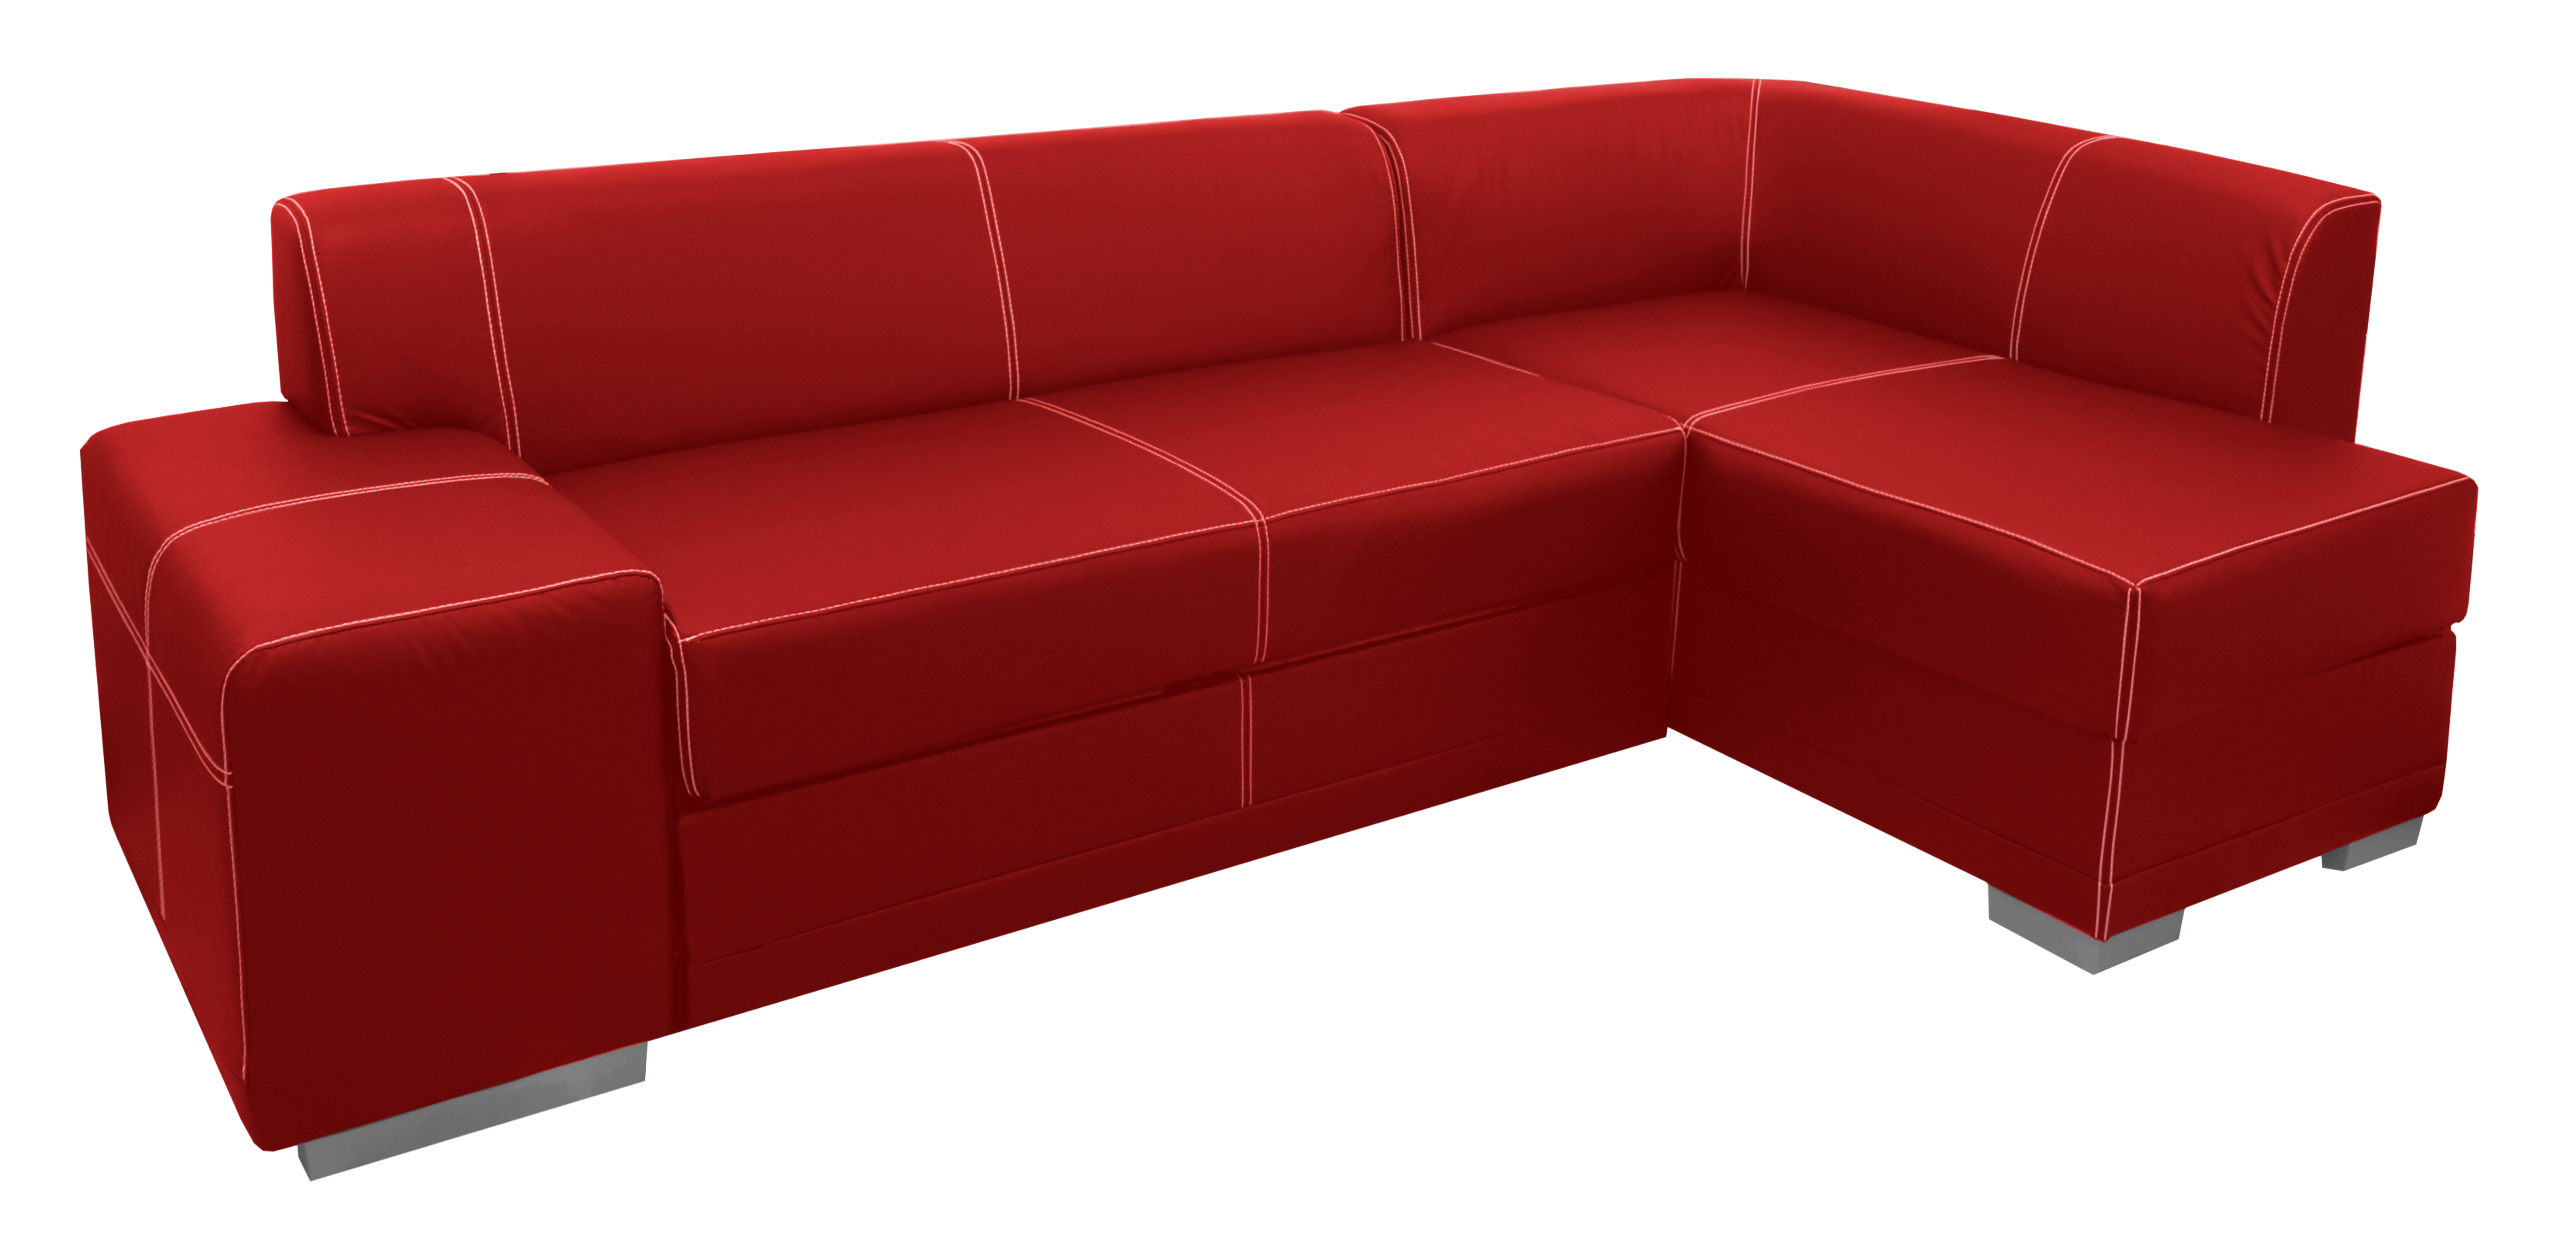 Sofa png images free. Furniture clipart red couch